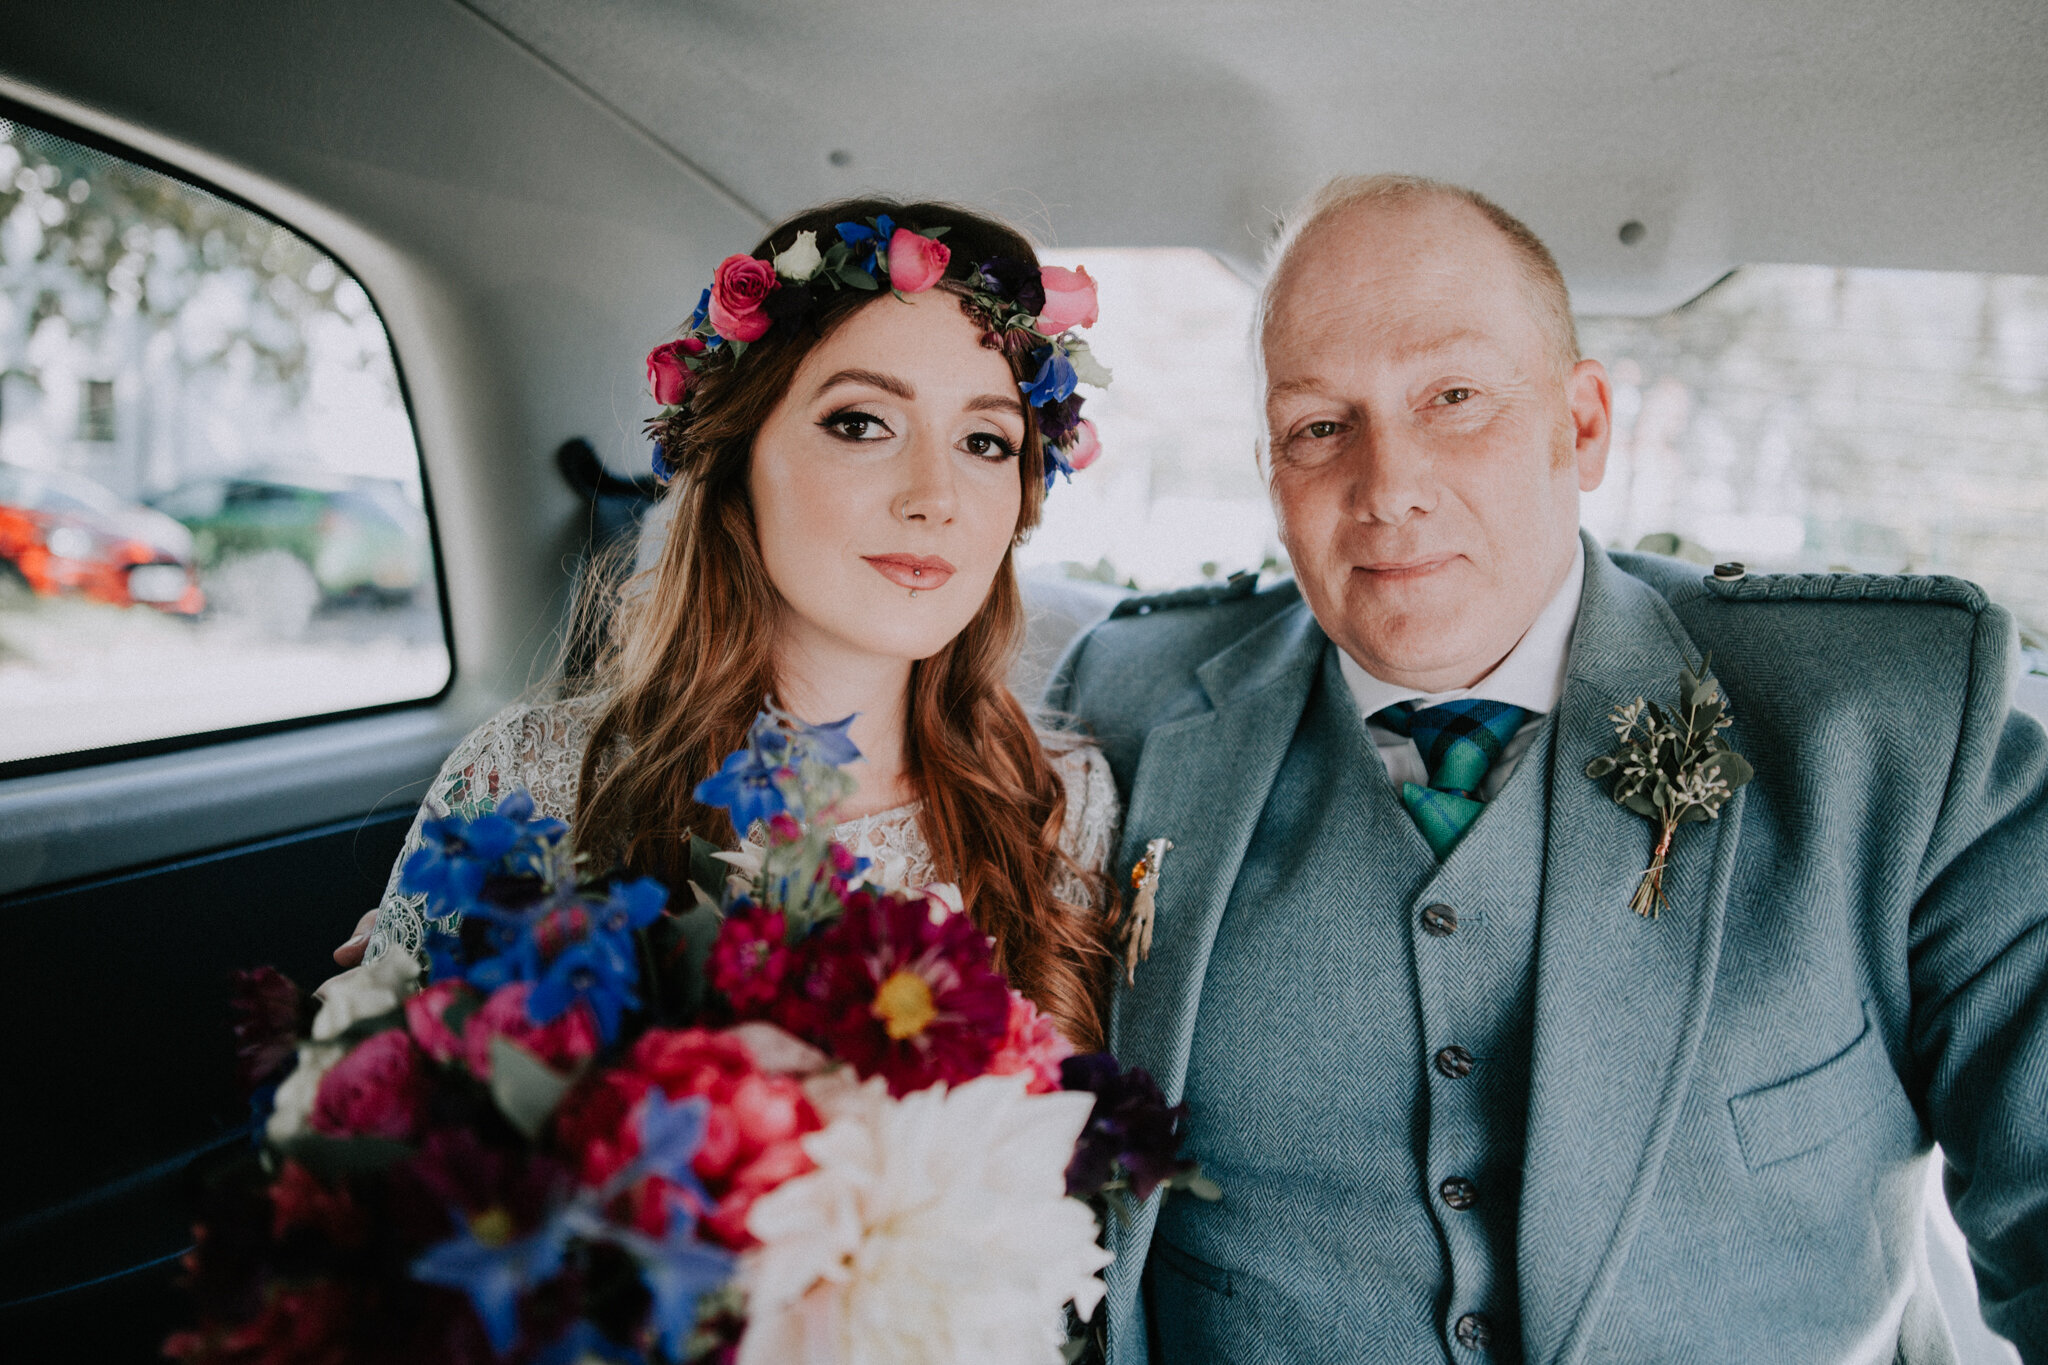 The photo of the bride and father of the bride in the car